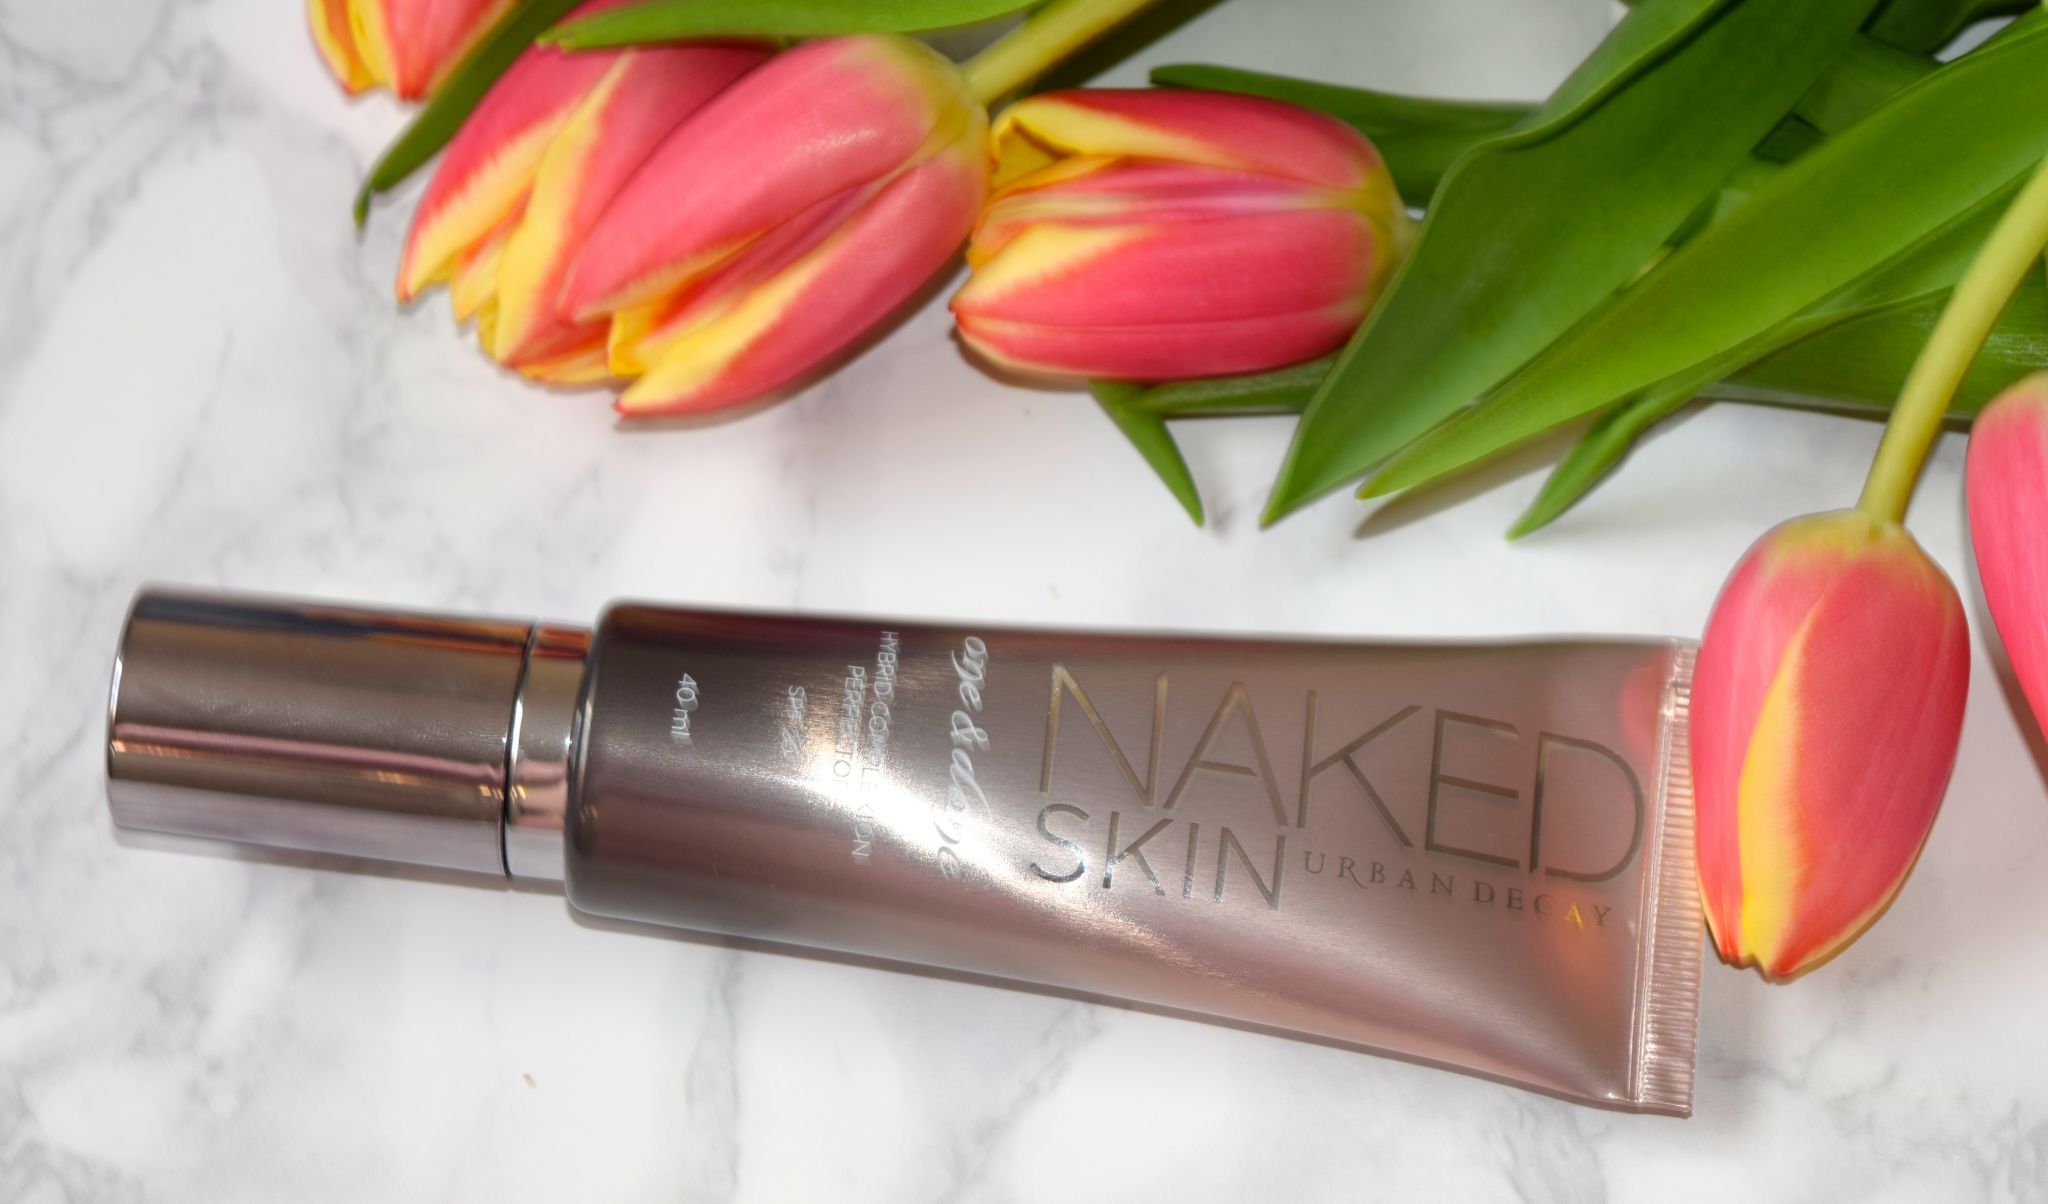 Urban Decay Naked Skin One & Done 1